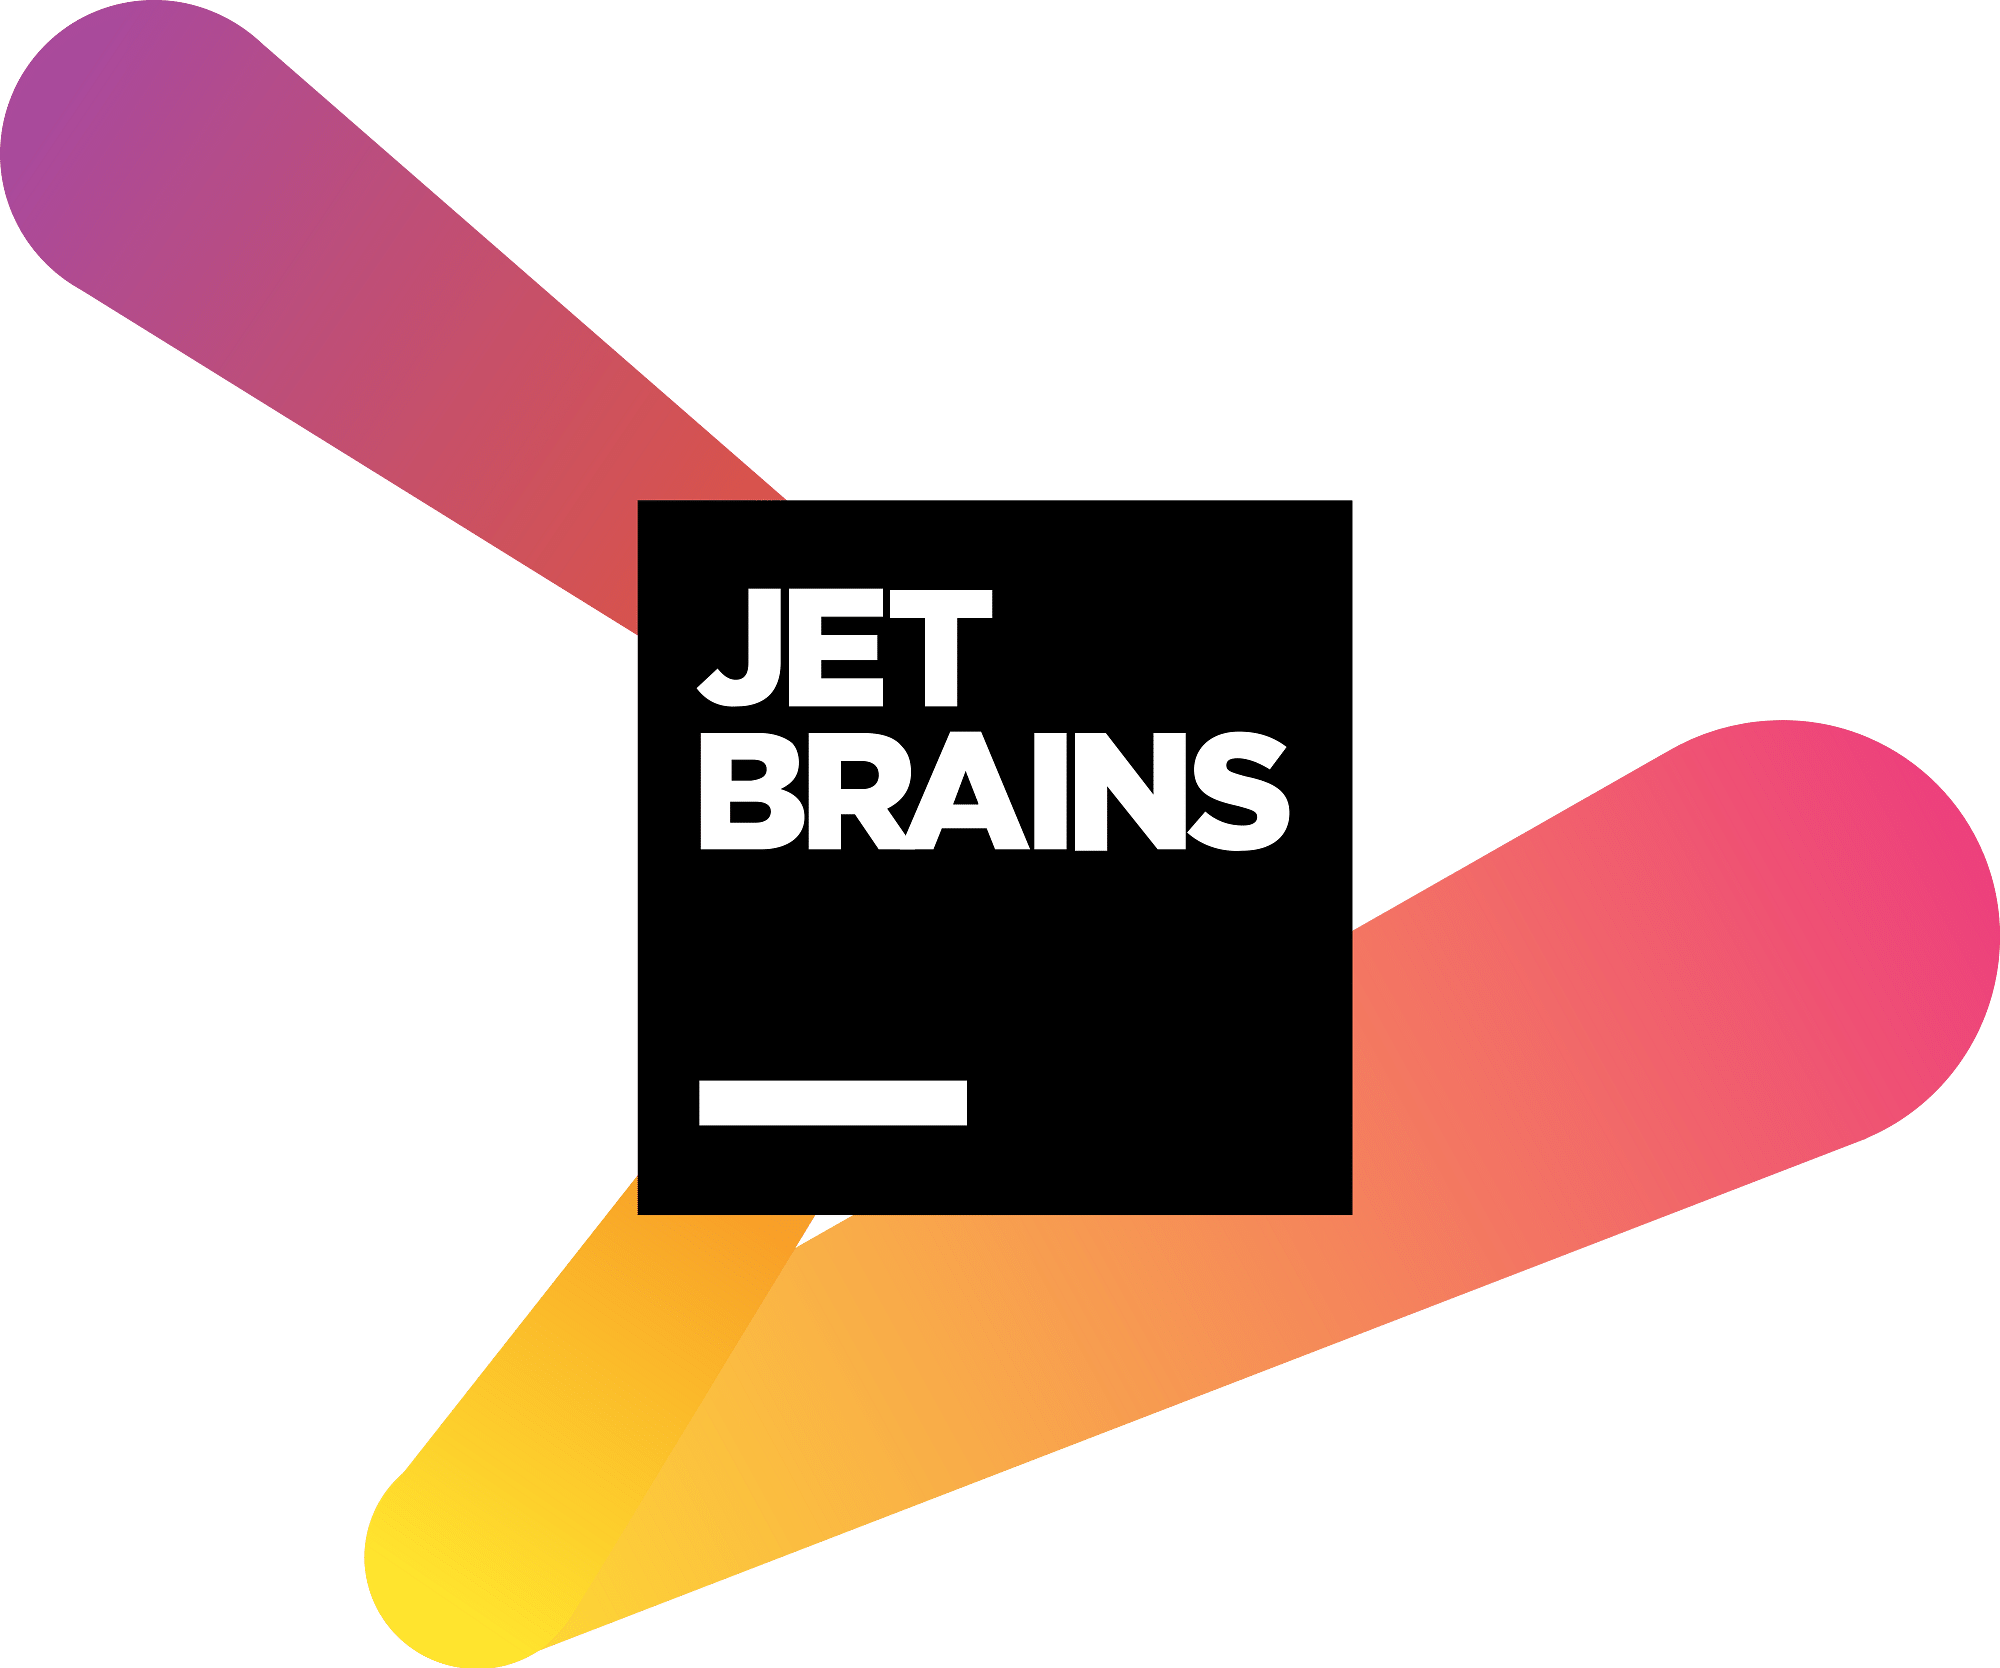 JetBrains is coming to Delhi, Bengaluru, and Hyderabad to